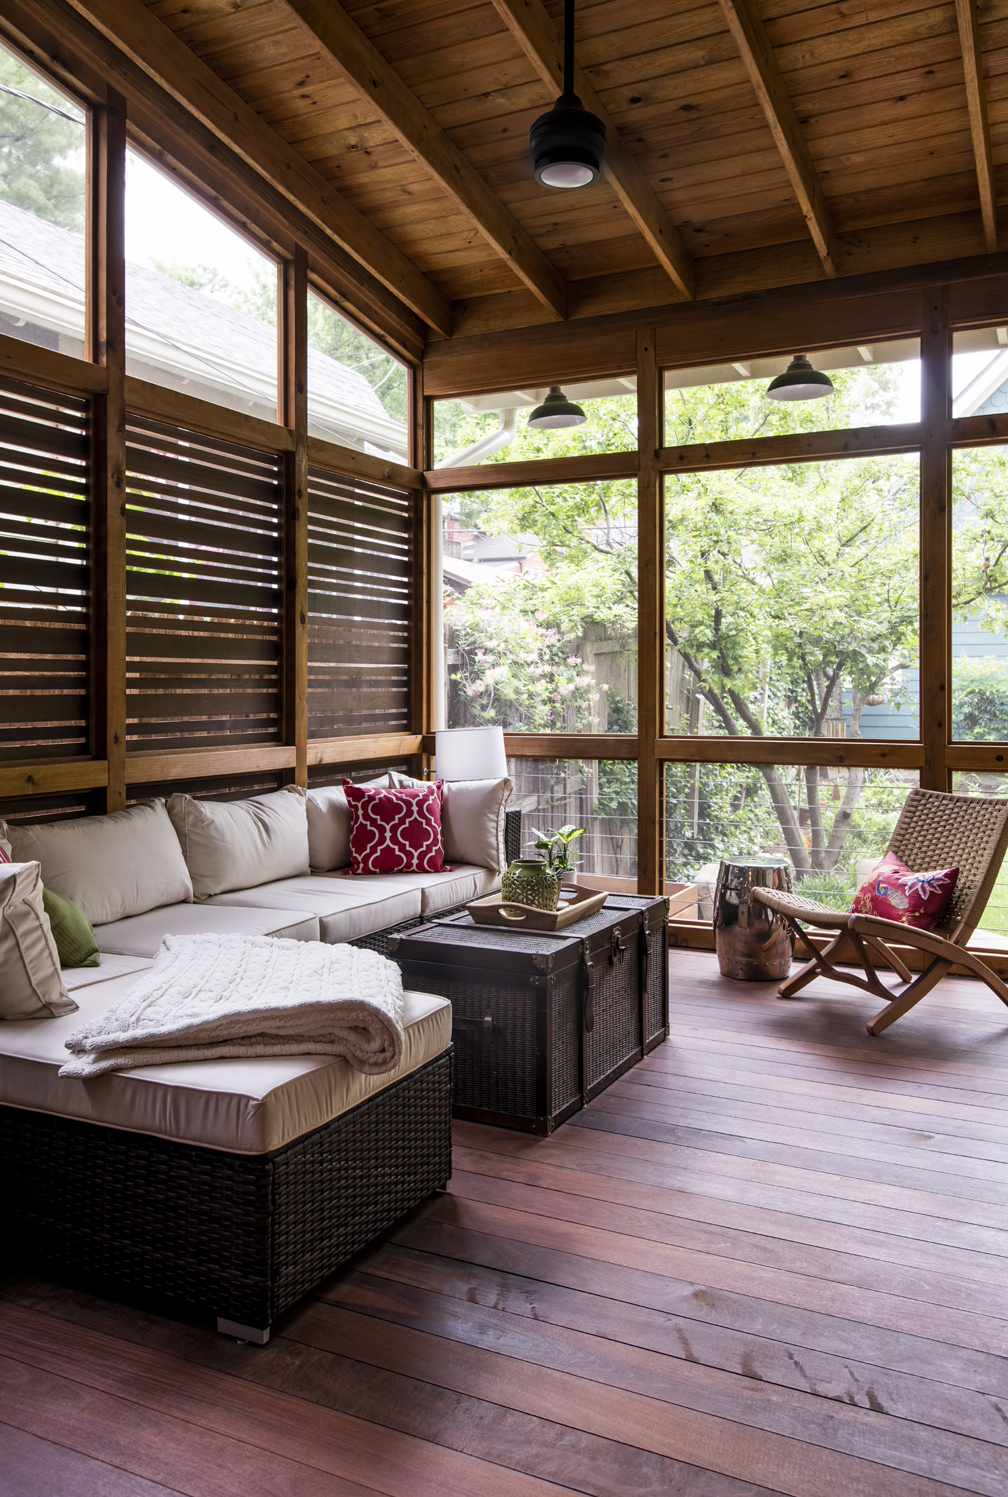 75 Beautiful Small Screened In Porch Pictures Ideas May 2021 Houzz